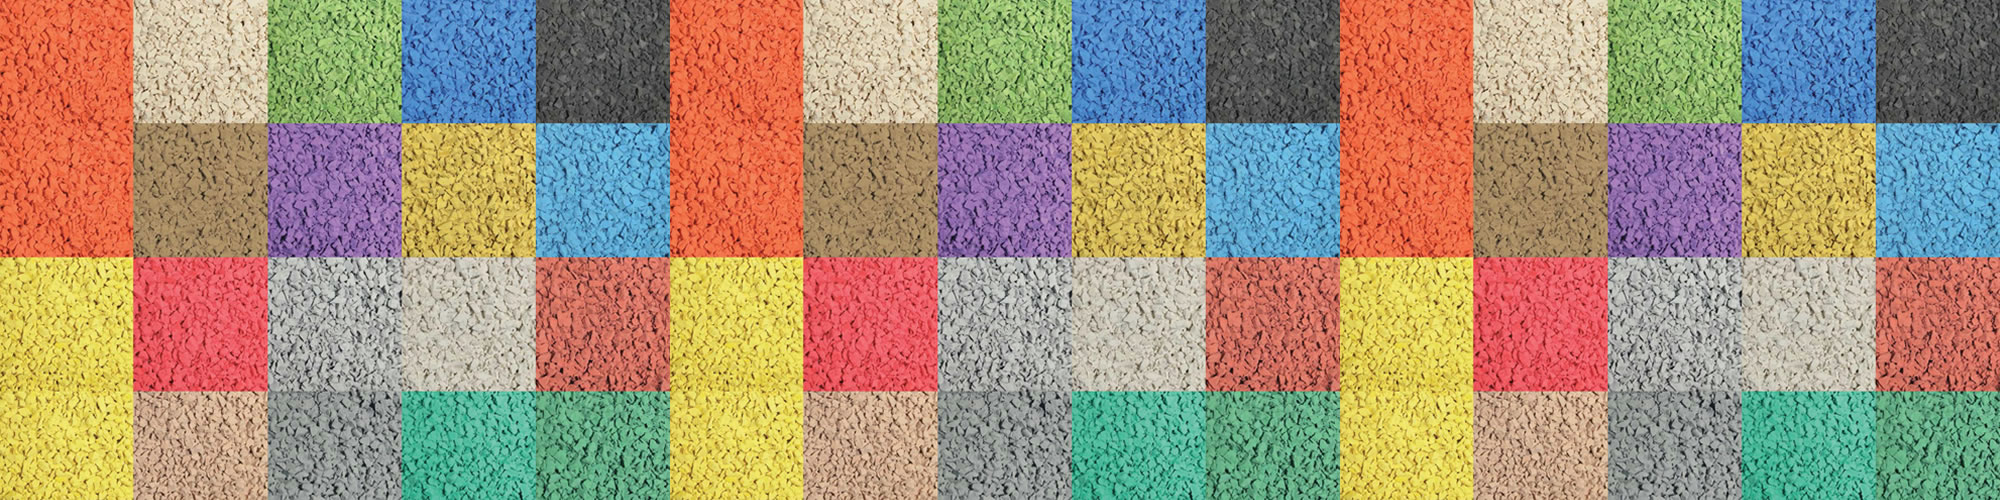 Rubbery Playground Safety Surfacing Colours